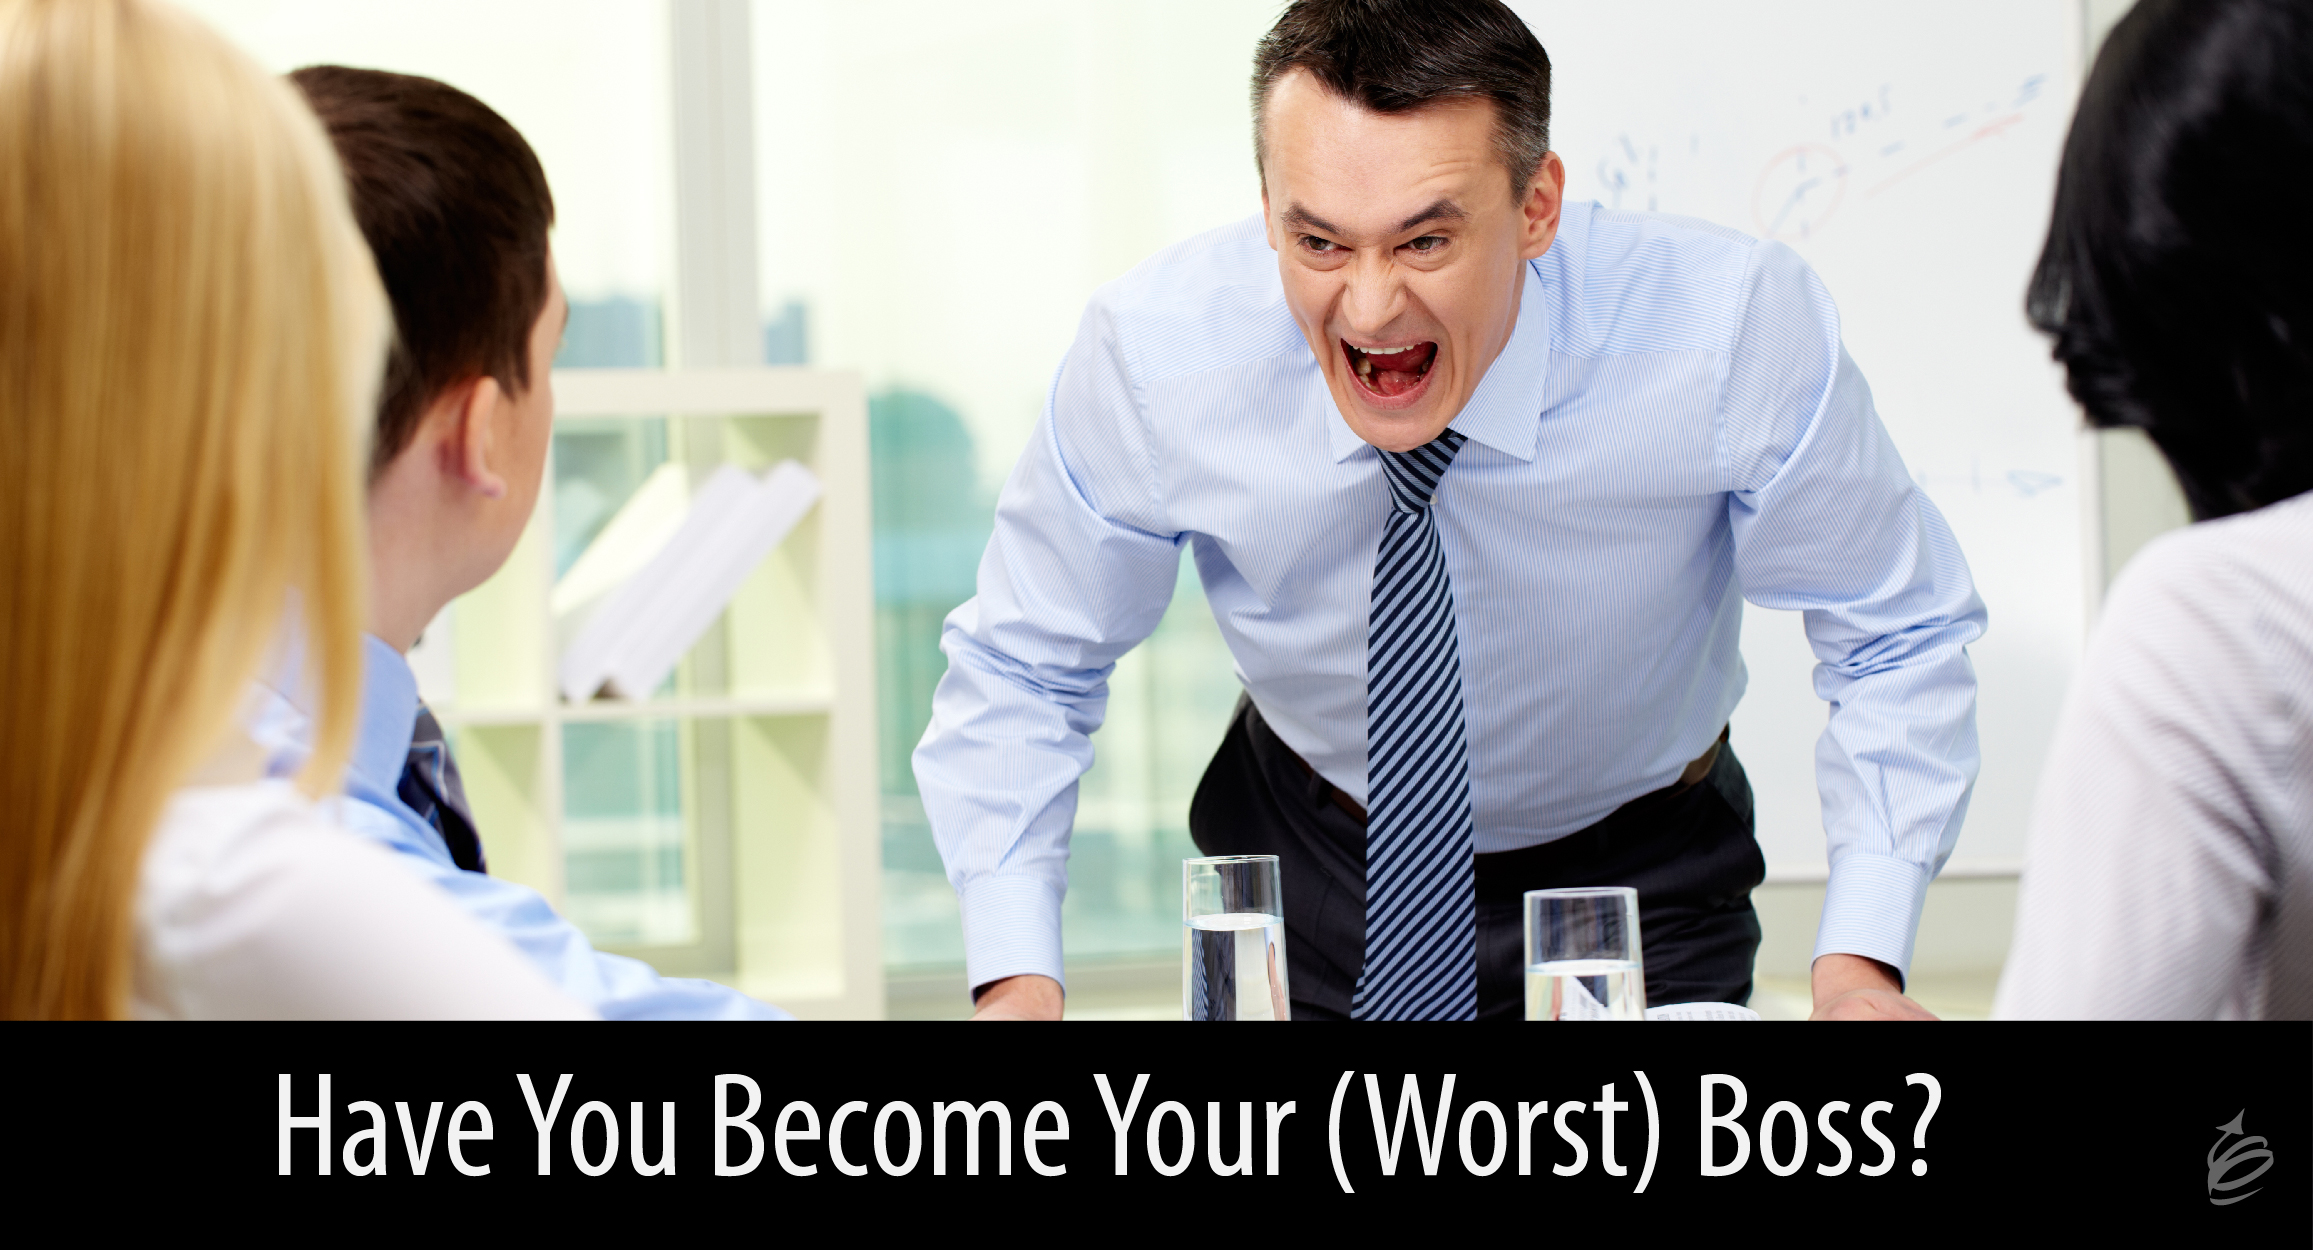 Are you your worst boss?